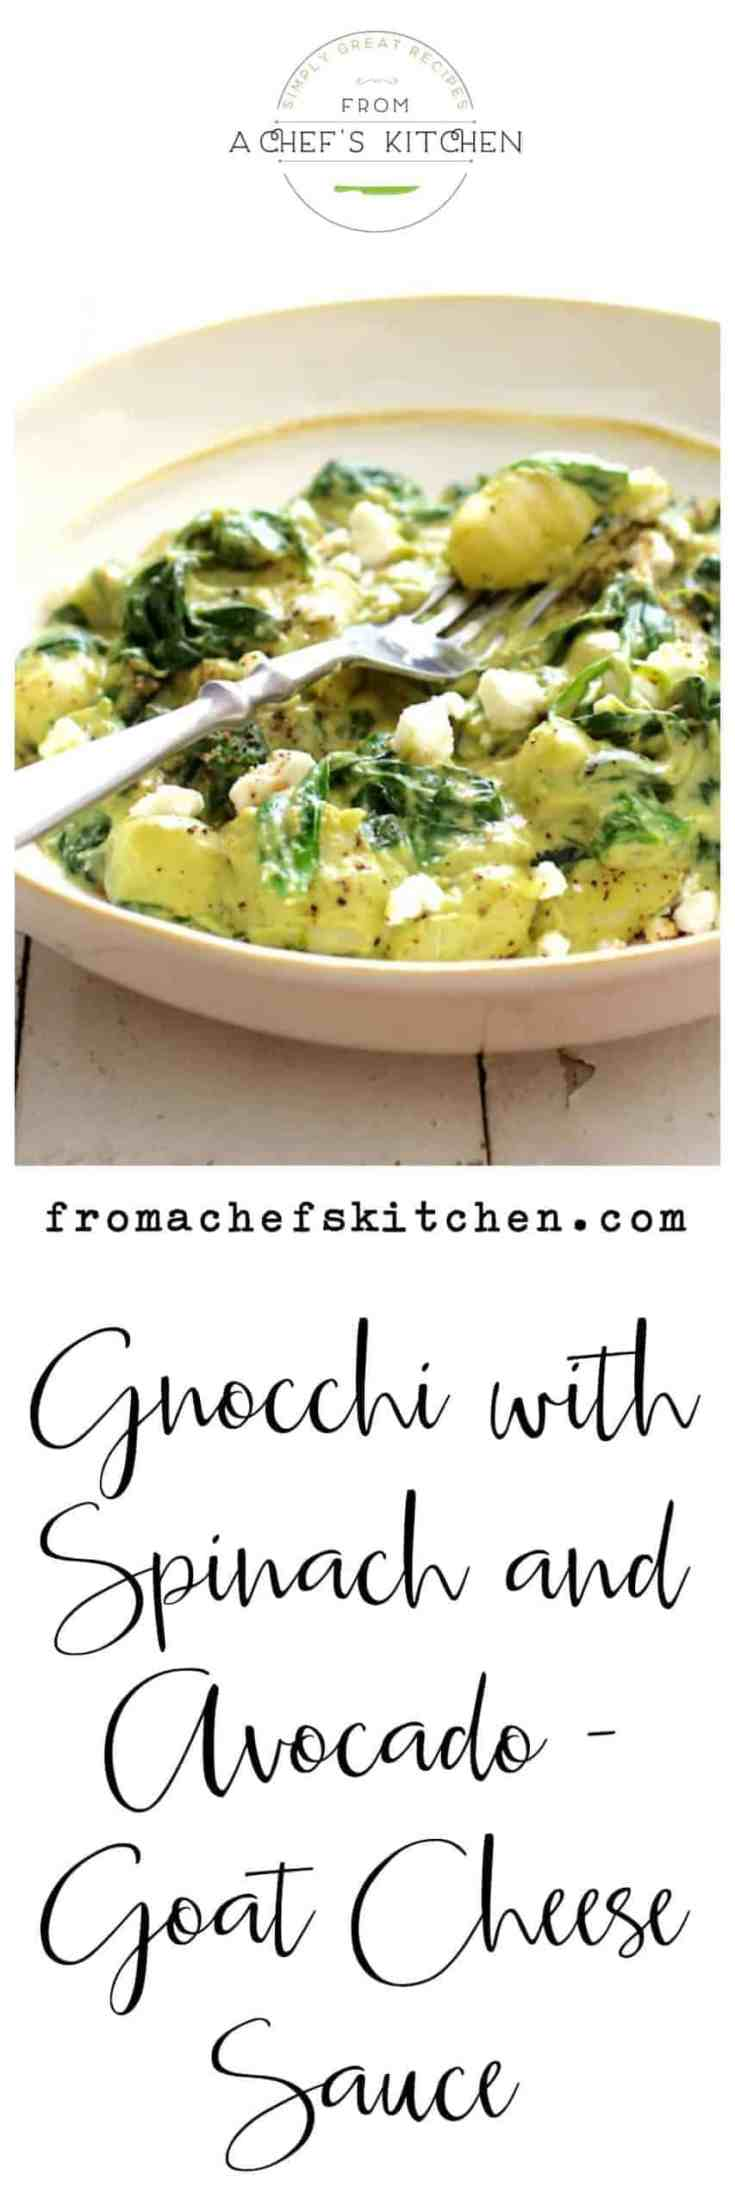 Gnocchi with Spinach and Avocado Goat Cheese Sauce is a quick and easy dinner solution with minimal cooking and maximum flavor! #gnocchi #pastarecipes #gnocchirecipes #avocadorecipes #vegetarianrecipes #vegetarianpastarecipes